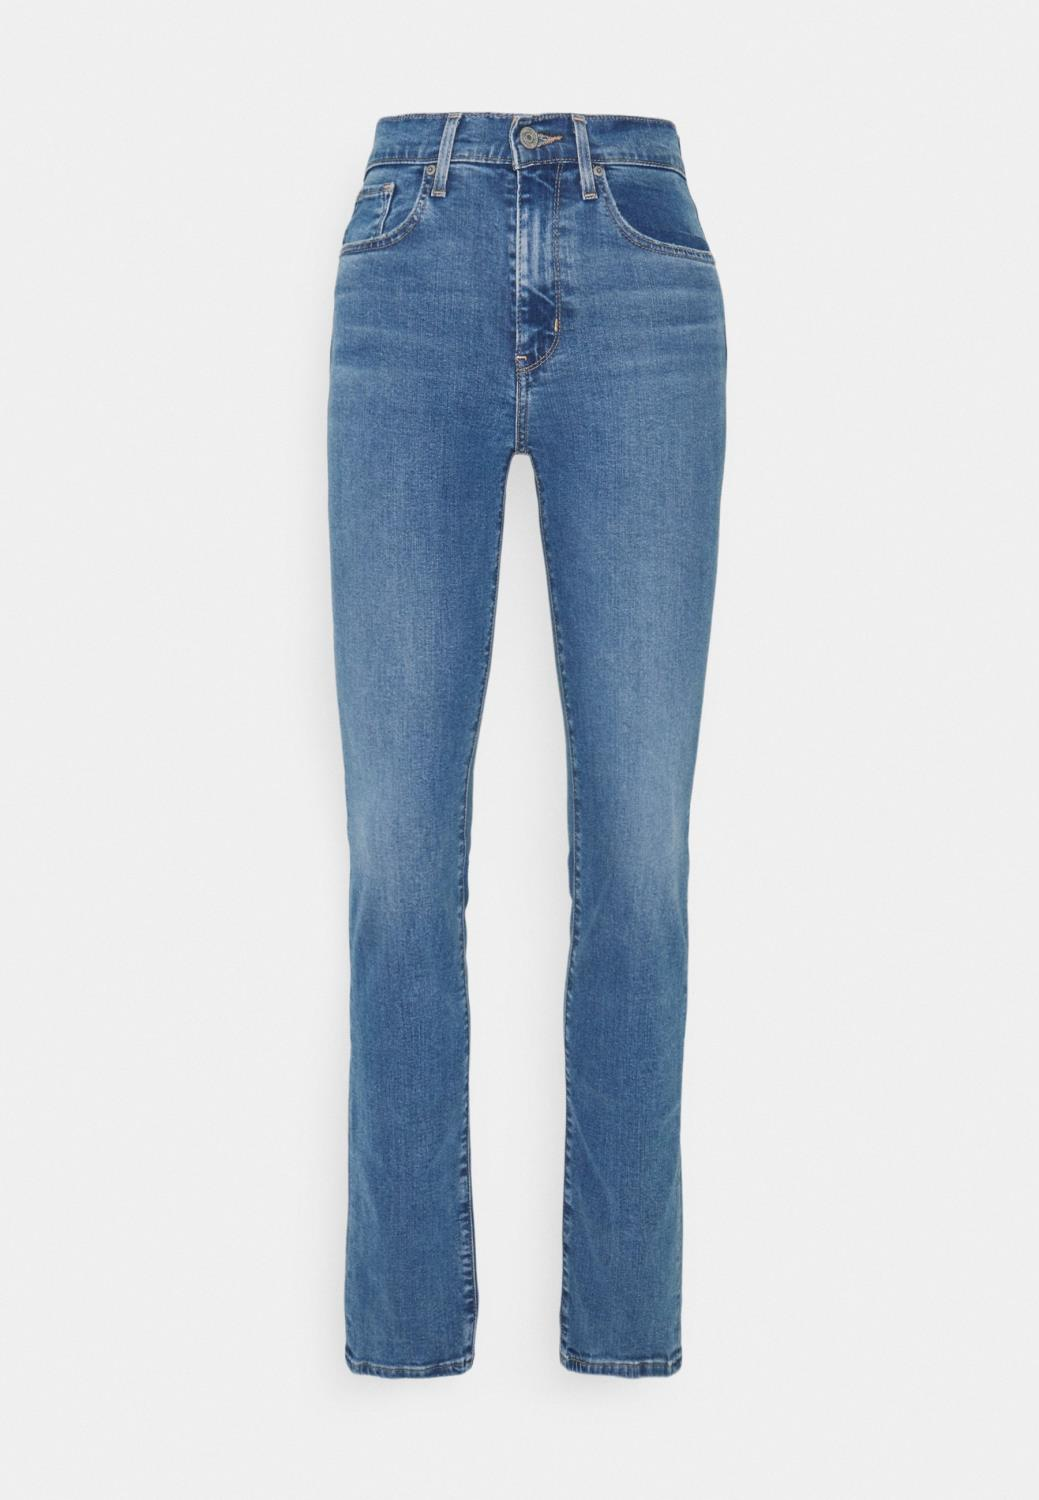 724 HIGH-RISE STRAIGHT RIO FROST - LEVIS